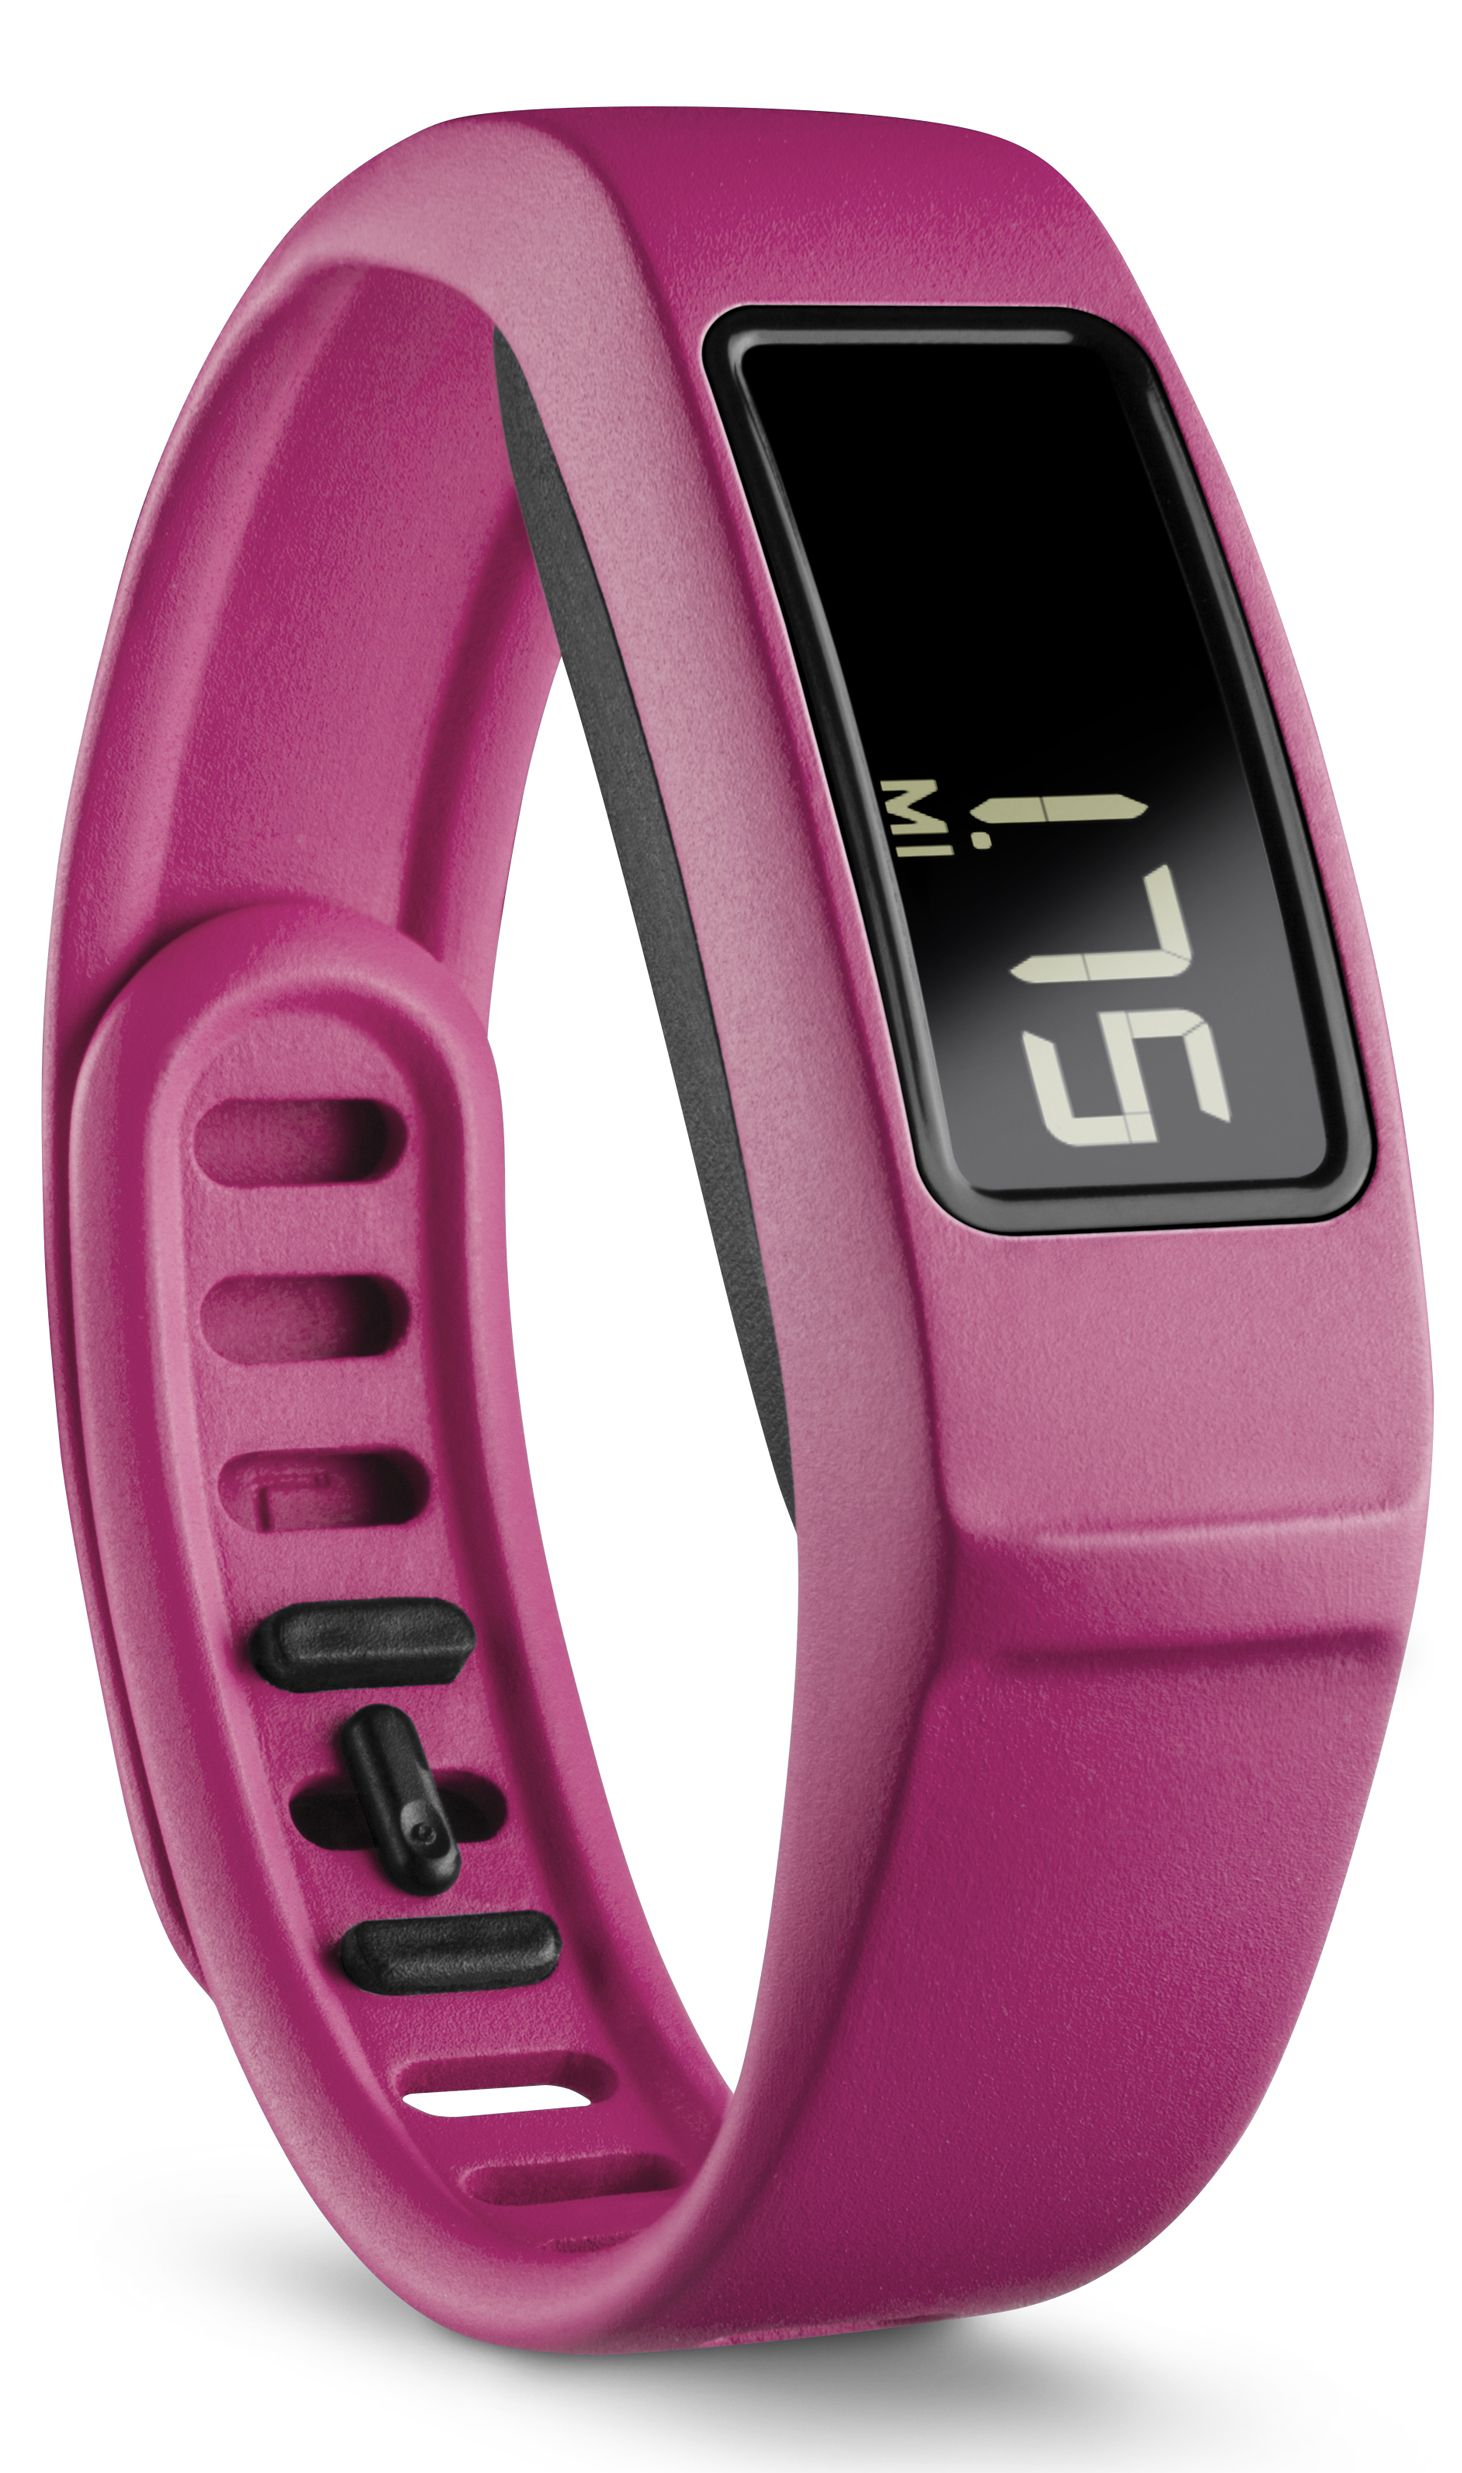 Move More And Track Your Steps Calories Distance With The Help Of Garmin Vívofit 2